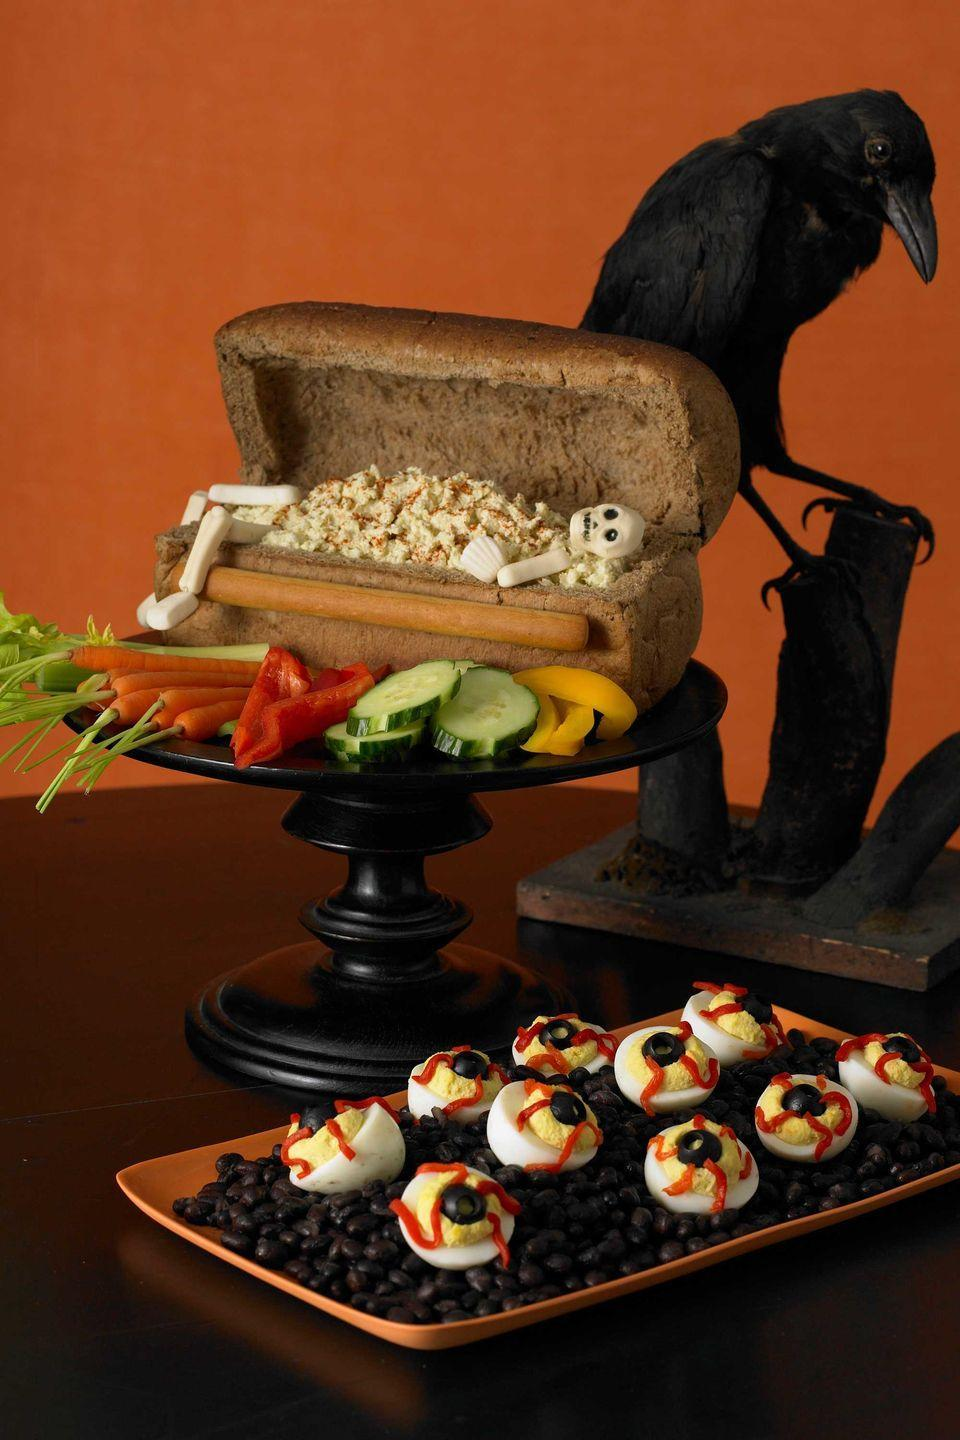 """<p>Whip up a batch of creamy deviled eggs and then turn them into eerie-looking """"eyeballs"""" with a few simple additions: black olive slices for the pupils and thinly sliced pimiento for veins.<br></p><p><a href=""""https://www.womansday.com/food-recipes/food-drinks/recipes/a10067/bloodshot-deviled-eyeballs-recipe-121384/"""" rel=""""nofollow noopener"""" target=""""_blank"""" data-ylk=""""slk:Get the Bloodshot Deviled Eyeballs recipe."""" class=""""link rapid-noclick-resp""""><em>Get the Bloodshot Deviled Eyeballs recipe.</em></a></p>"""